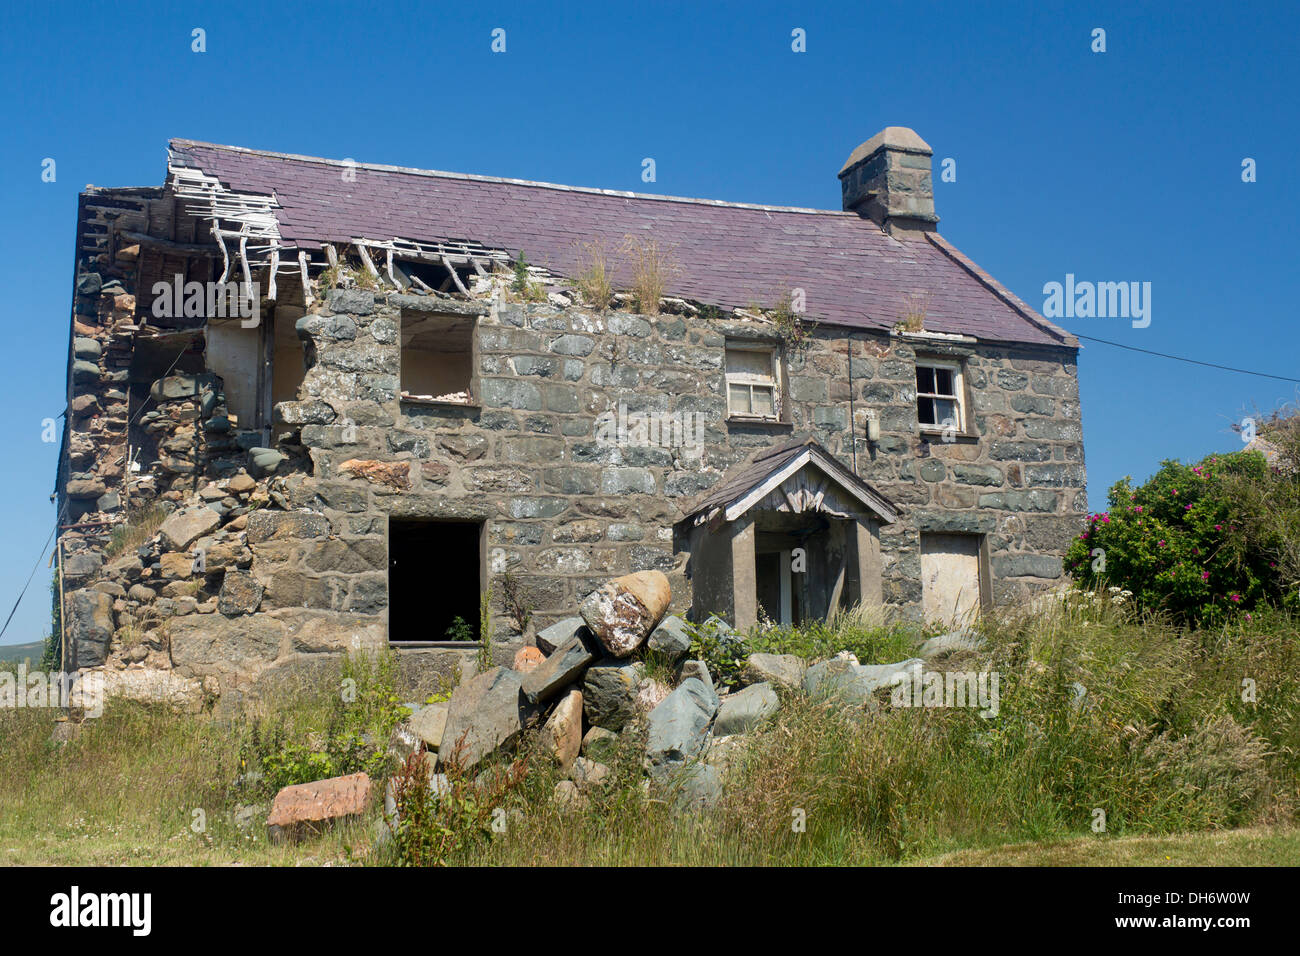 Farmhouse For Sale Wales Derelict Cottage Uk Stock Photos And Derelict Cottage Uk